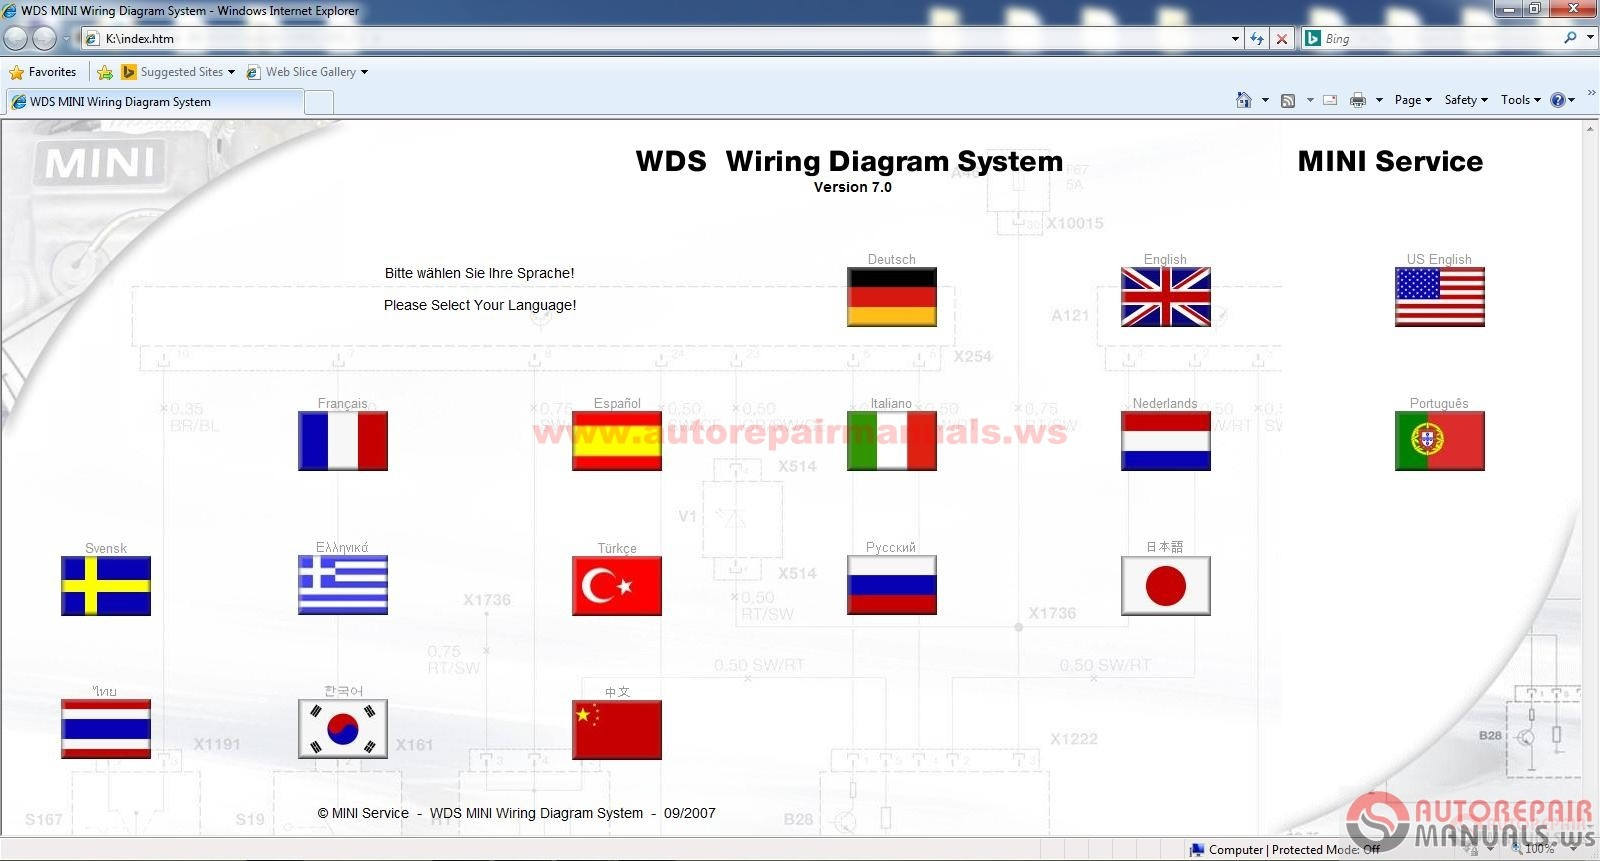 BMW_WDS_v15_and_MINI_WDS_v7_Wiring_Diagram_System8 bmw wds v15 and mini wds v7 wiring diagram system free auto wds wiring diagram at edmiracle.co